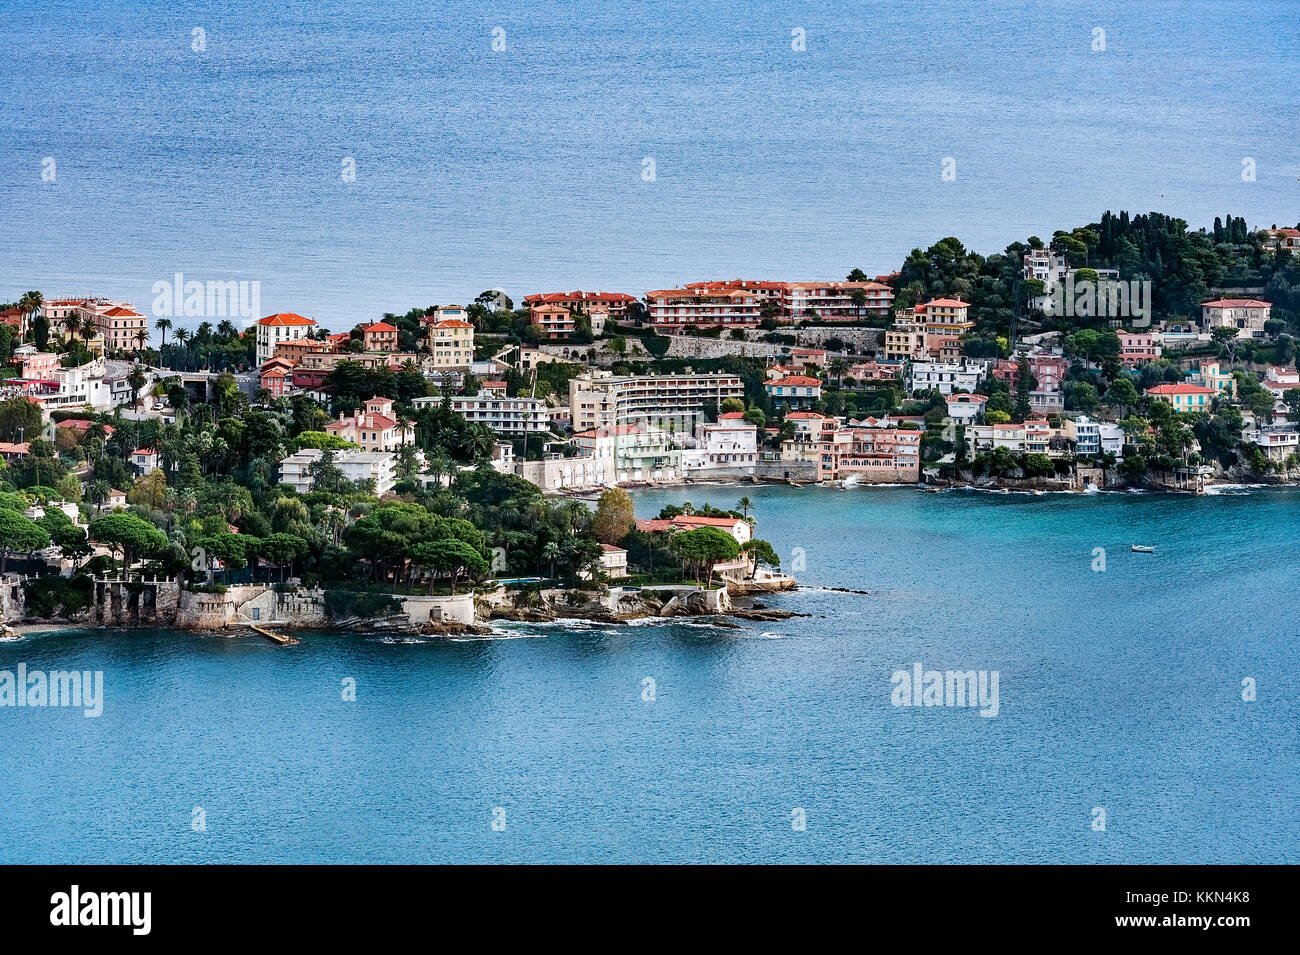 Aerial view of the French commune of Saint Jean Cap Ferrat, French Riviera, Côte d'Azur, France, Europe. - Stock Image